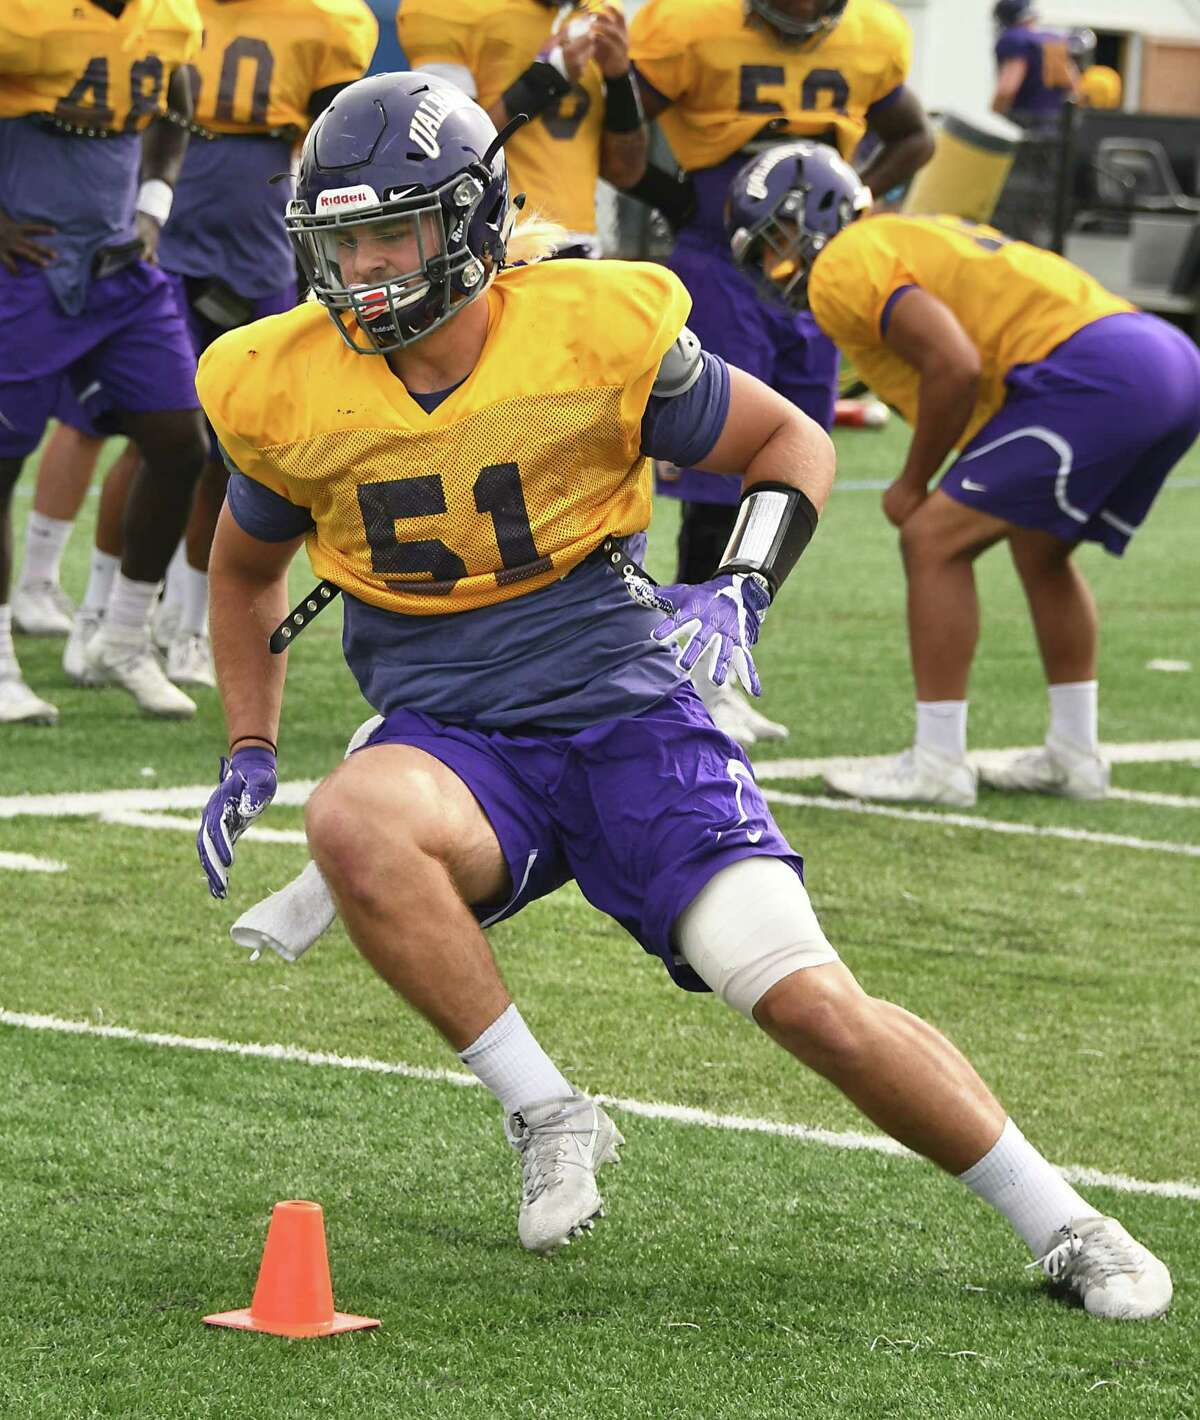 University at Albany linebacker Nate Hatalsky runs a drill during practice at Casey Stadium on Wednesday, Sept. 20, 2017 in Albany, N.Y. (Lori Van Buren / Times Union)